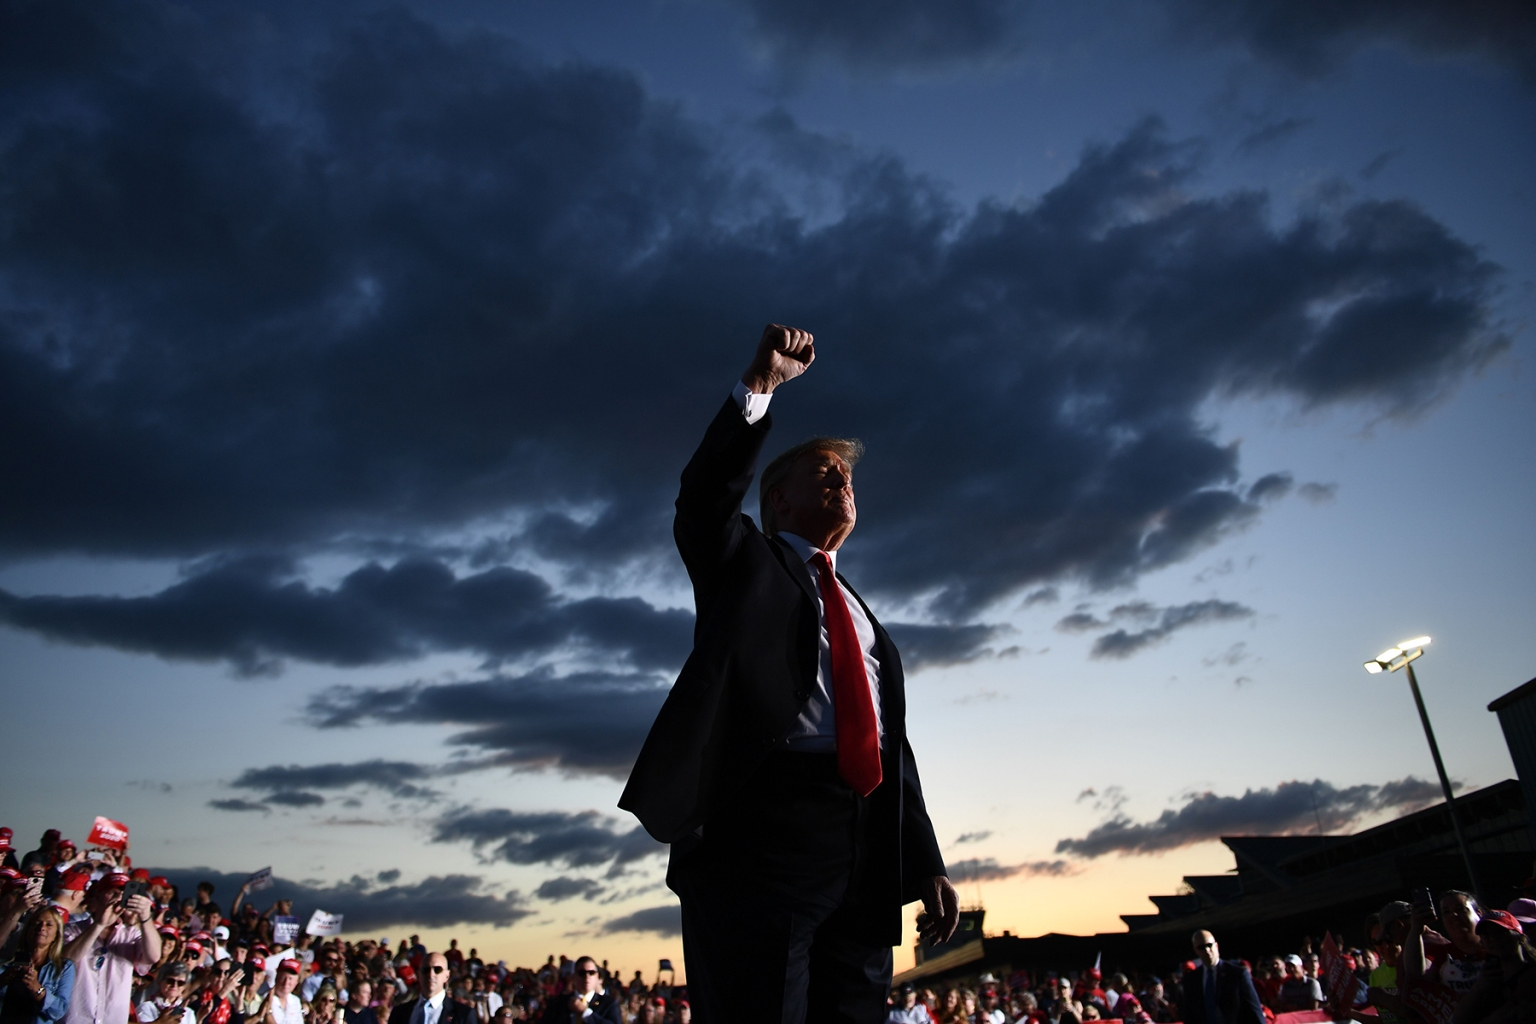 U.S. President Donald Trump walks by his supporters as he leaves his Make America Great Again rally in Montoursville, Pennsylvania, on May 20. BRENDAN SMIALOWSKI/AFP/Getty Images